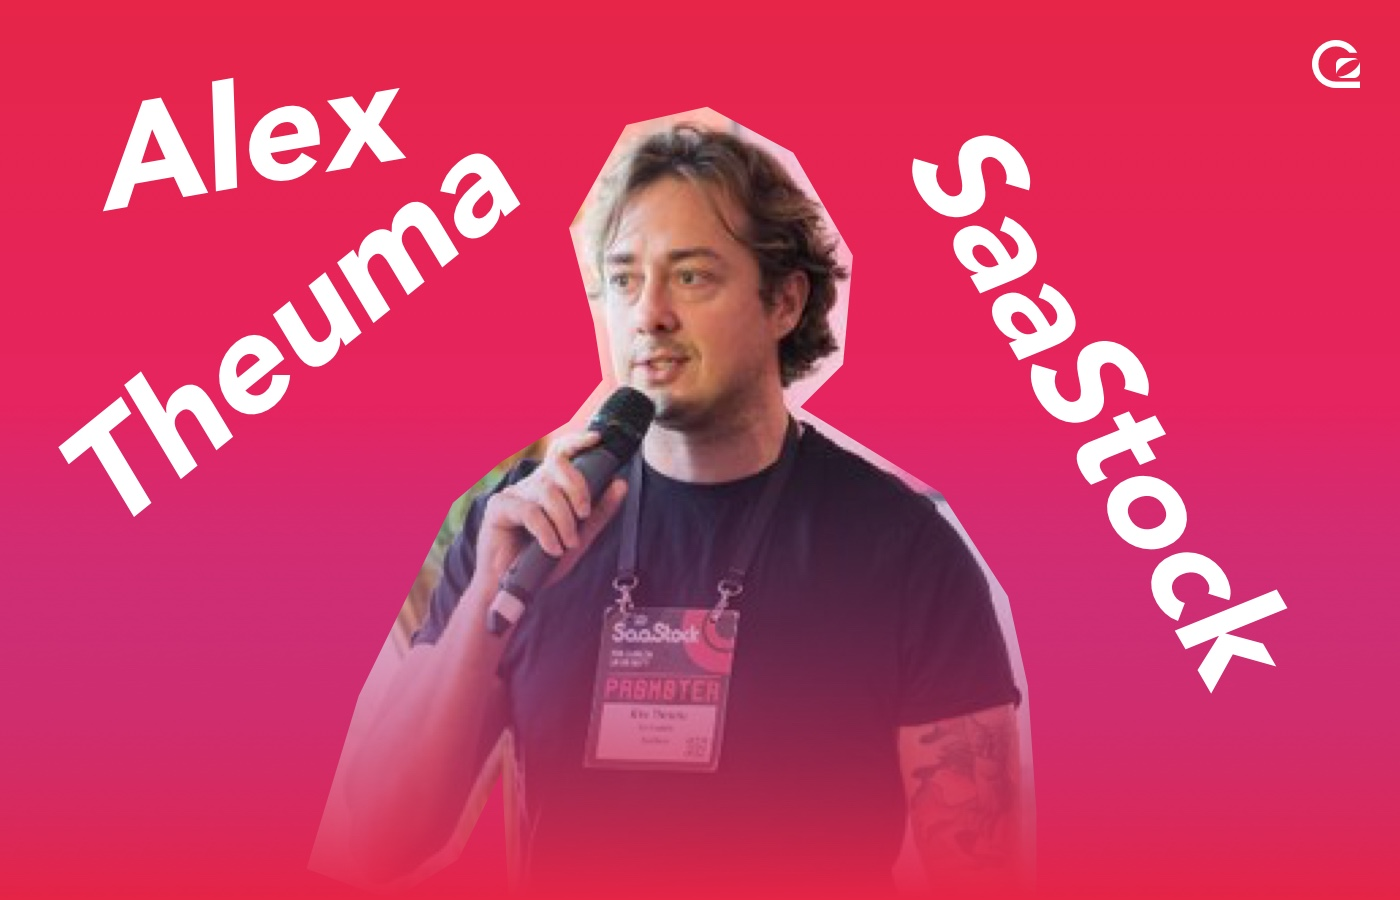 Alex Theuma of SaaStock on the GoSquared Podcast